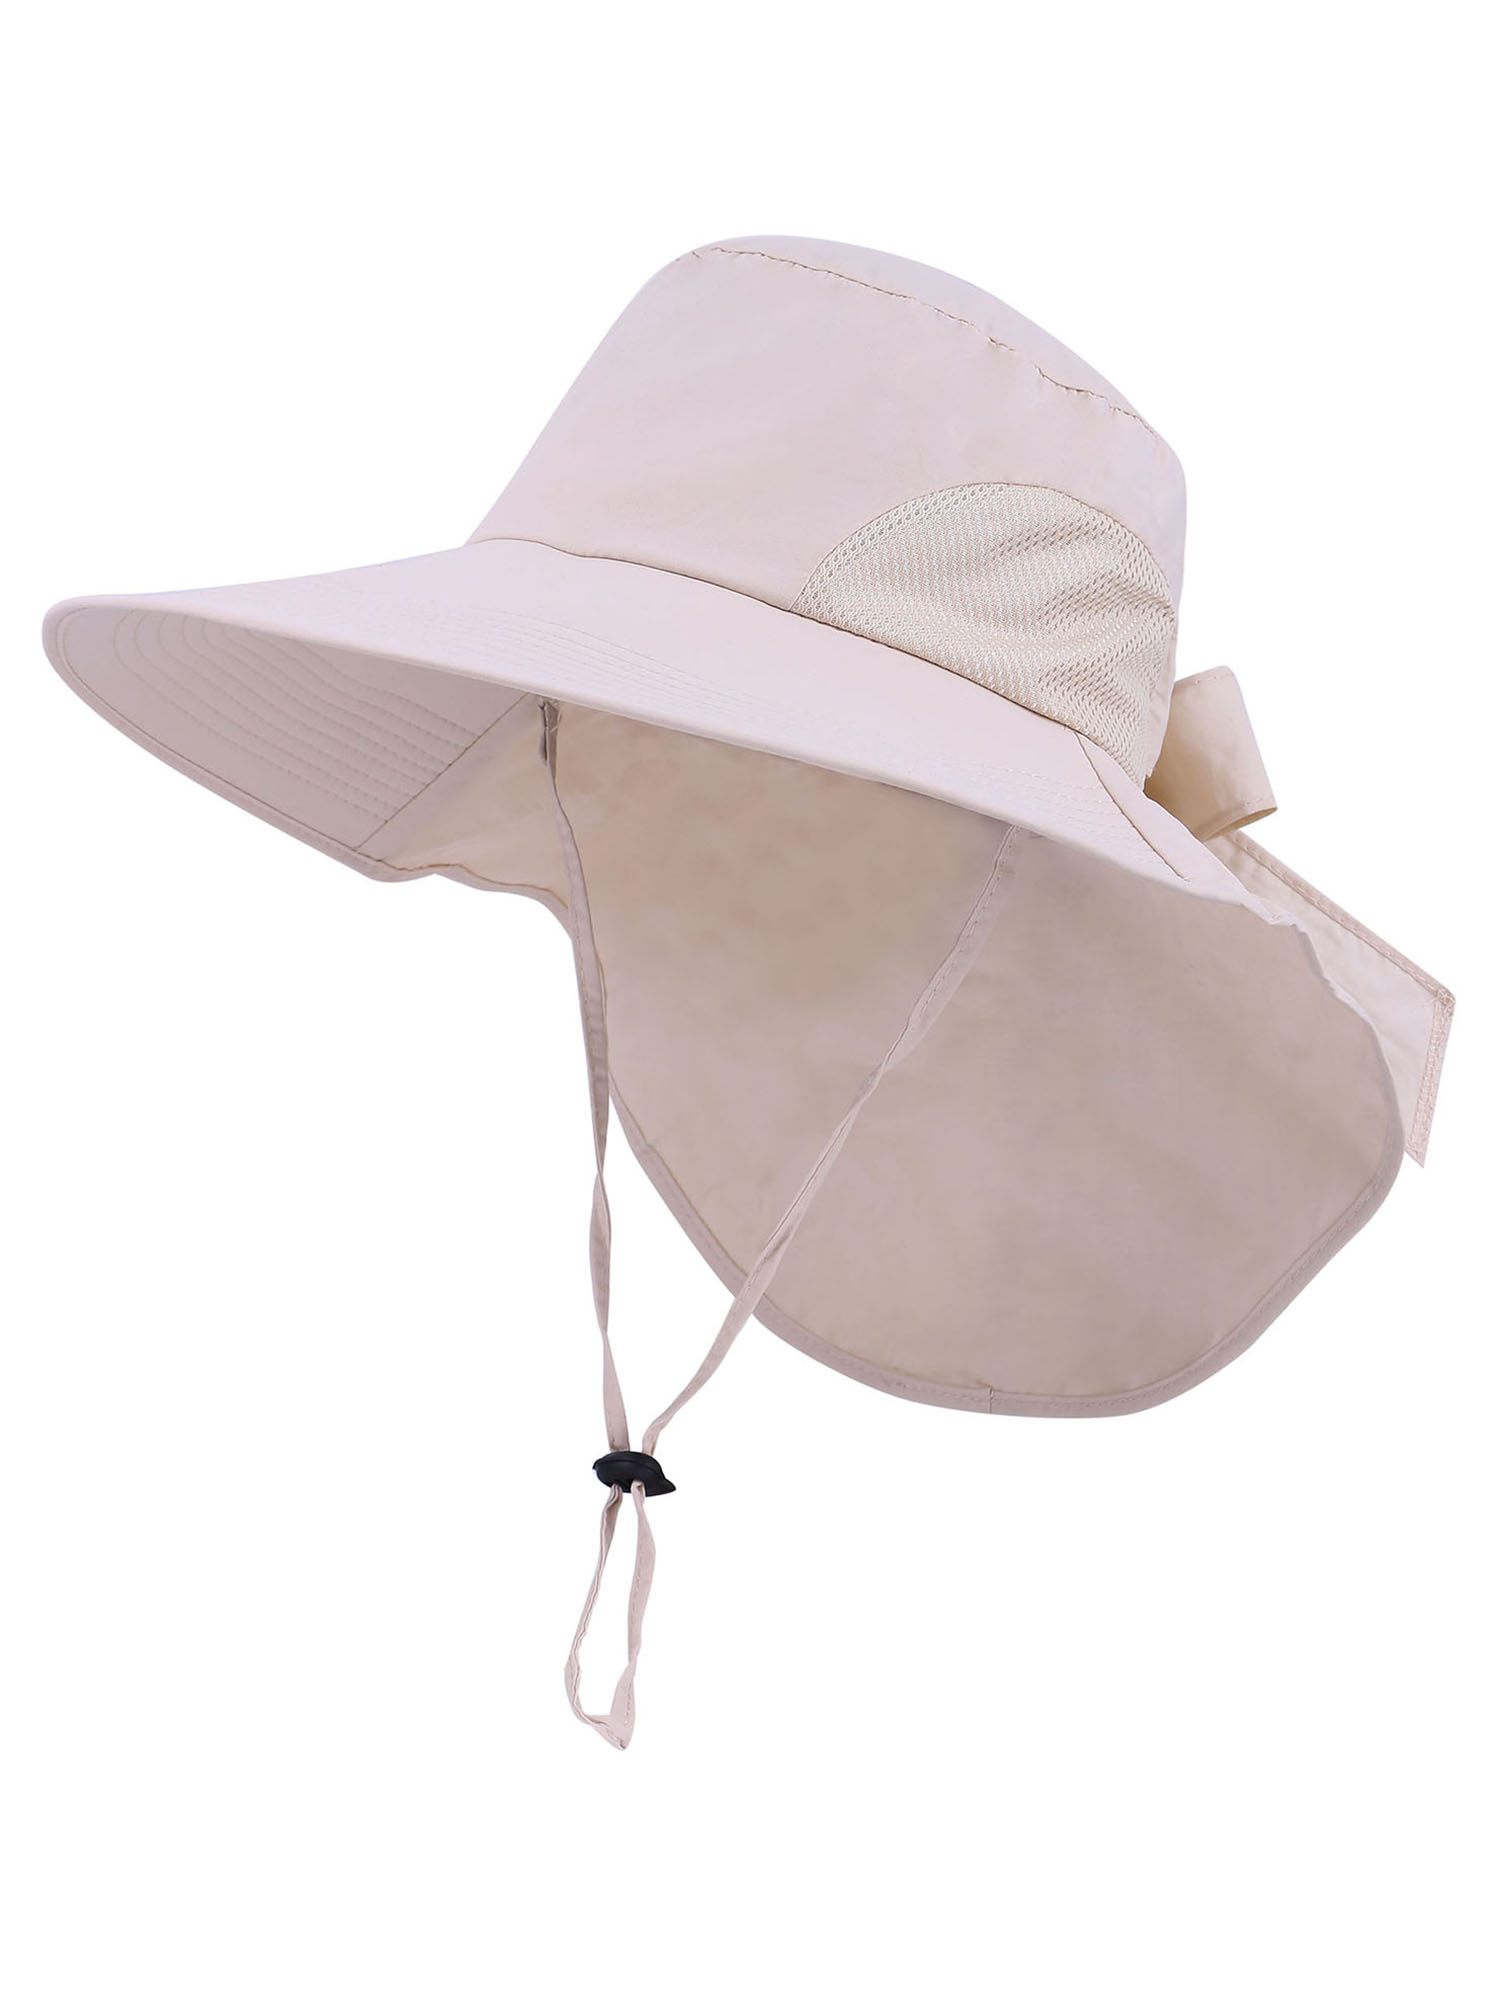 Home Prefer Kids Toddlers UPF50 Wide Brim Sun Hat Lite UV Protection Bucket Hat